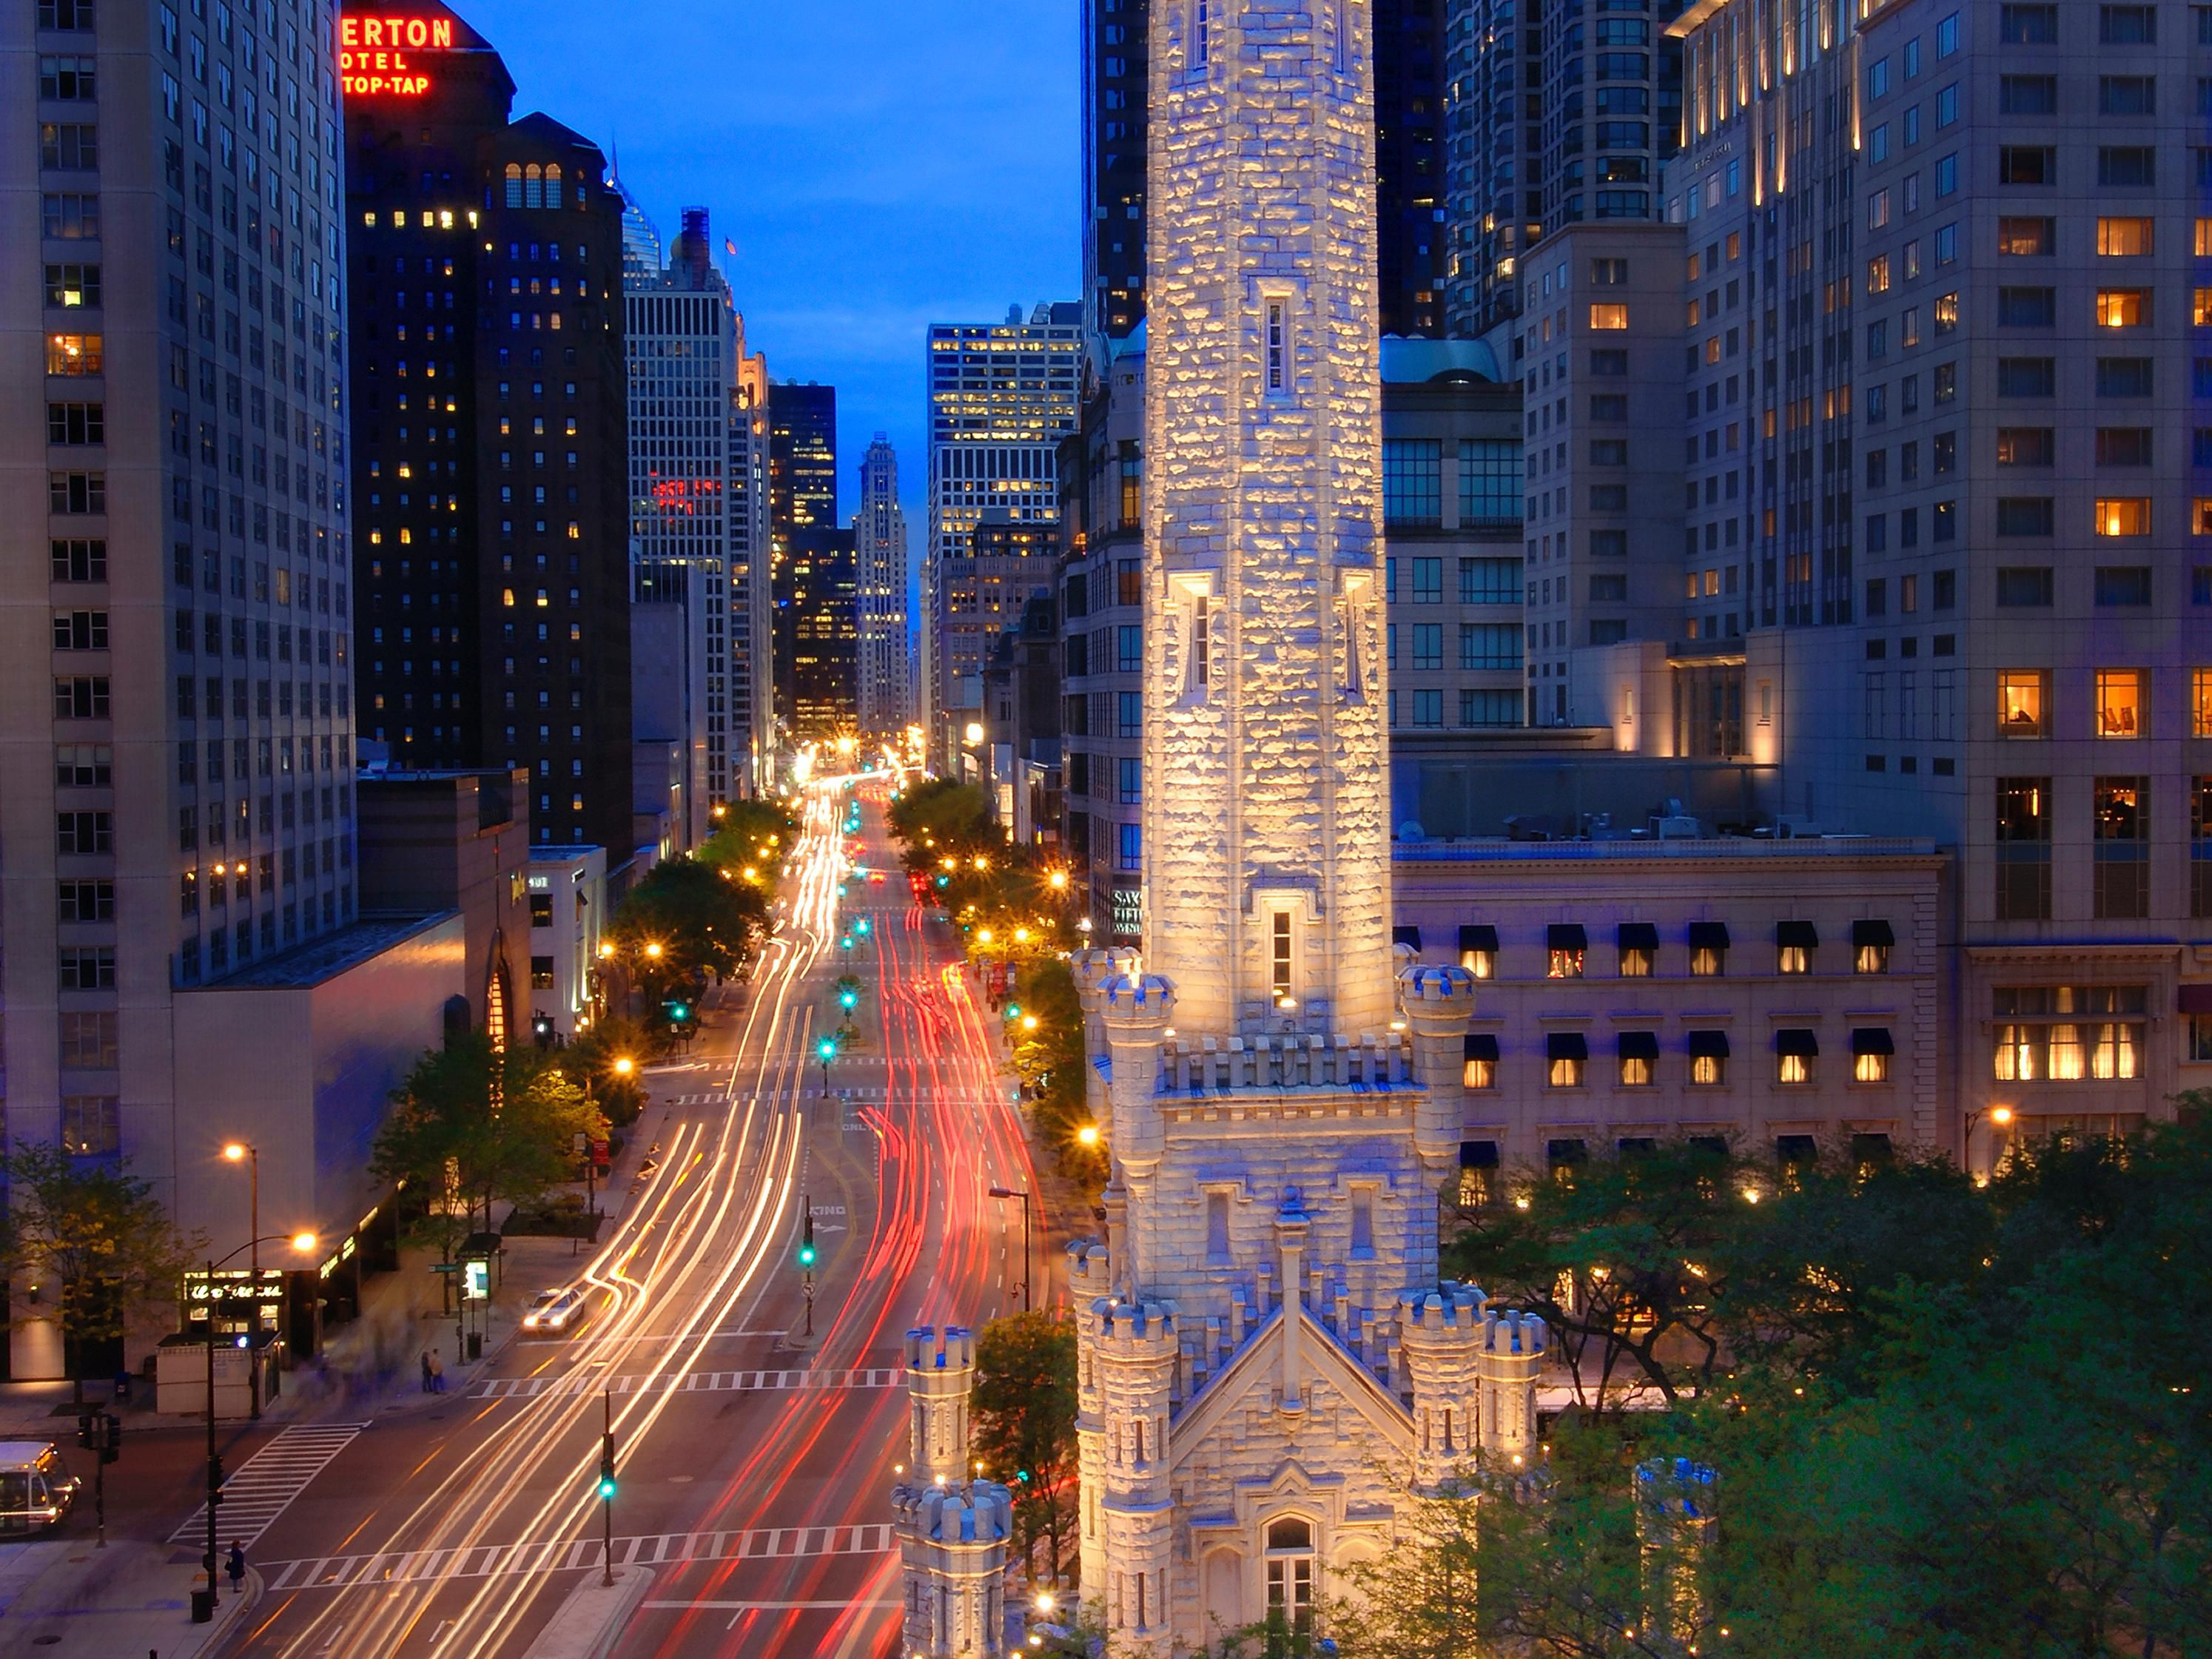 Avenue Crowne Plaza located off Michigan Avenue / Magnificent Mile